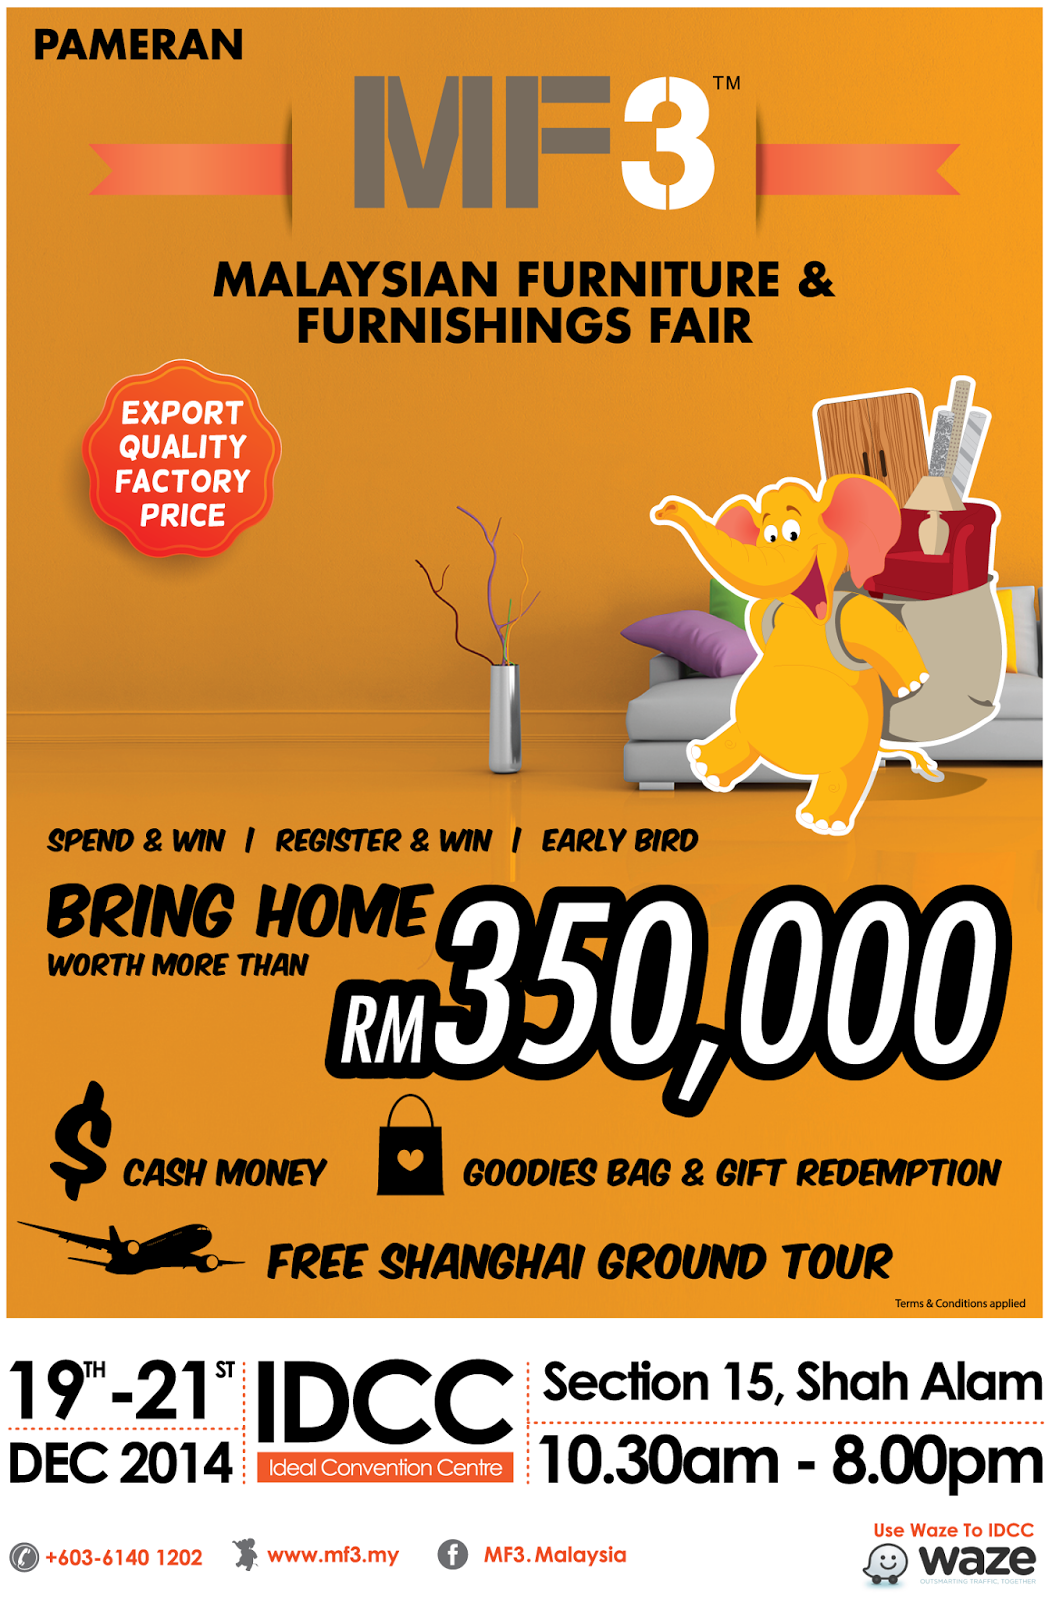 MF3 Malaysia Furniture & Furnishing Fair 2014 @Ideal Convention Centre Shah Alam